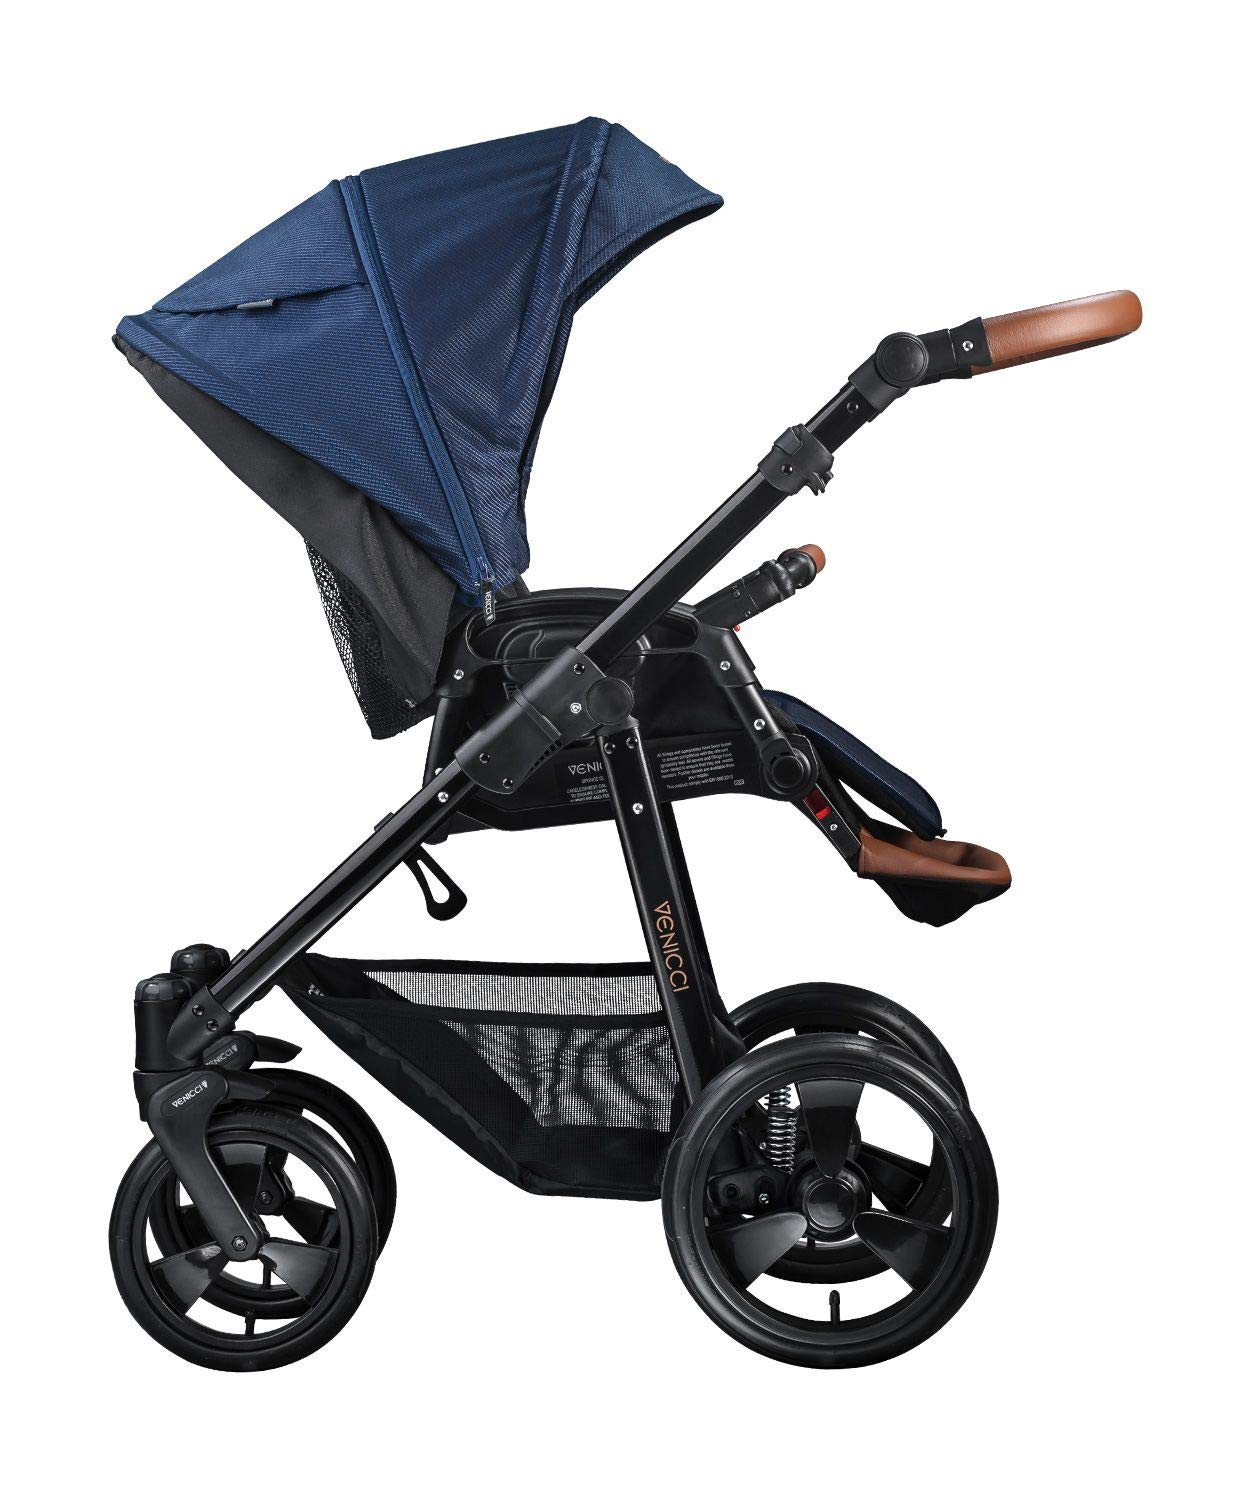 Venicci Gusto 3-in-1 Travel System - Navy - with Carrycot + Car Seat + Changing Bag + Footmuff + Raincover + Mosquito Net + 5-Point Harness and UV 50+ Fabric + Car Seat Adapters + Cup Holder  3 in 1 Travel System with included Group 0+ Car Seat Suitable for your baby from birth onwards 5-point harness to enhance the safety of your child 3